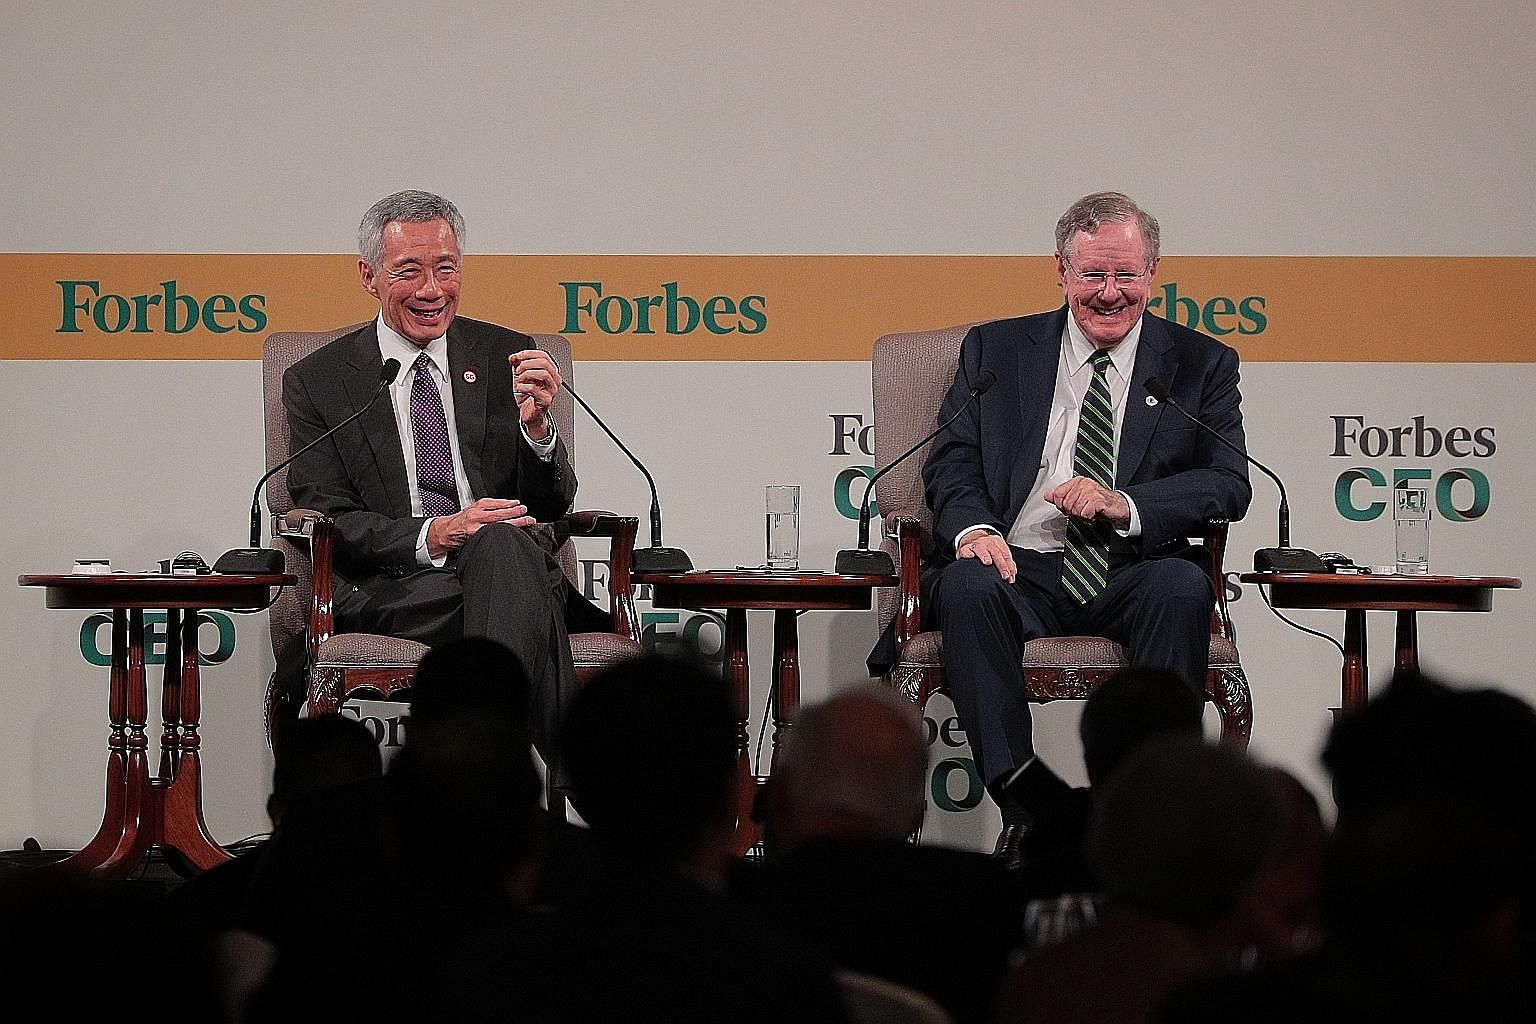 Prime Minister Lee Hsien Loong in a dialogue with Mr Steve Forbes, chairman and editor-in-chief of Forbes Media, at the Forbes Global CEO Conference yesterday. The hour-long dialogue covered a broad range of topics, including the US-China trade tensi